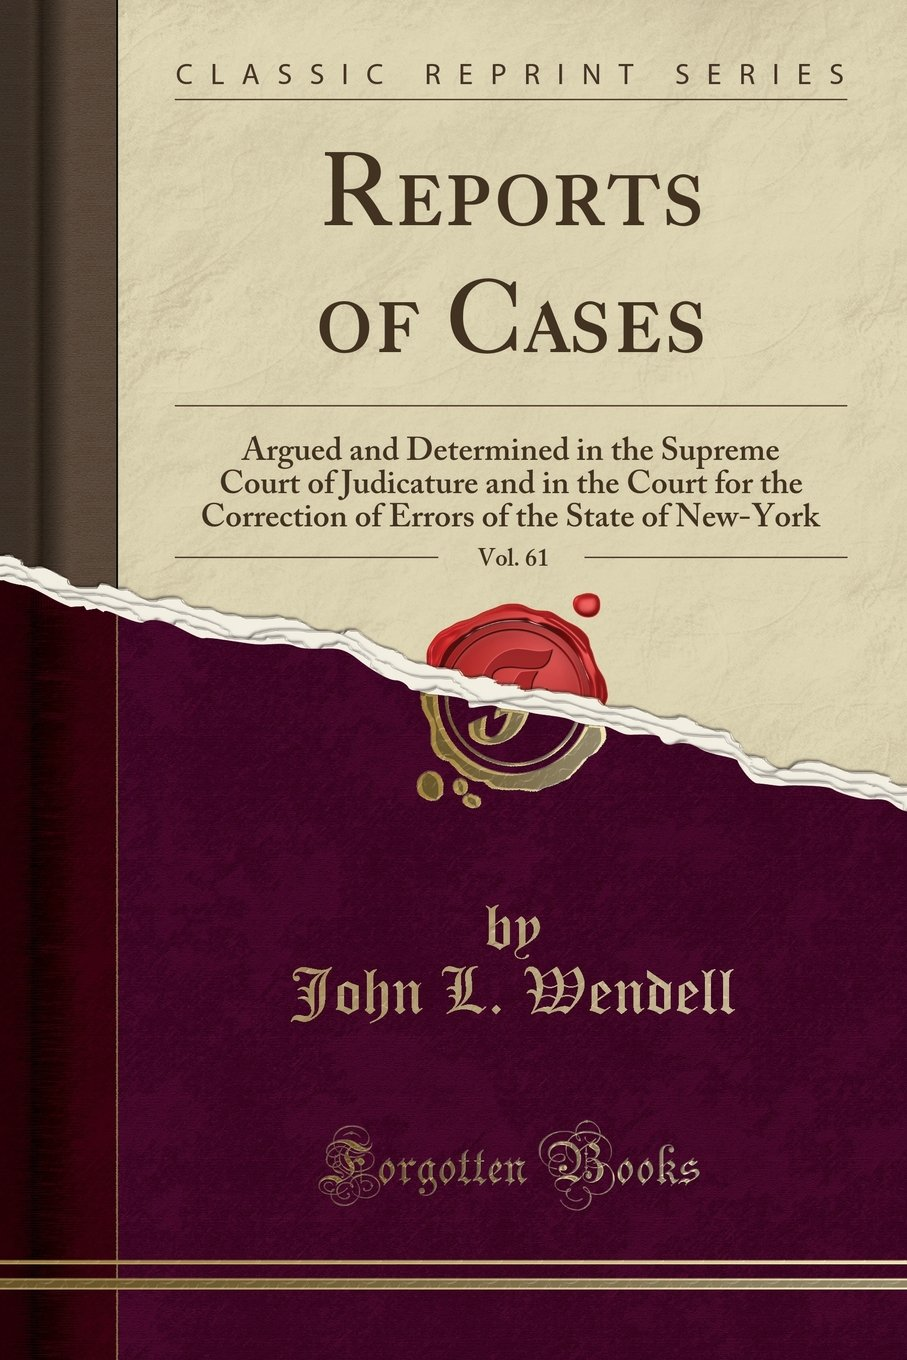 Read Online Reports of Cases, Vol. 61: Argued and Determined in the Supreme Court of Judicature and in the Court for the Correction of Errors of the State of New-York (Classic Reprint) PDF